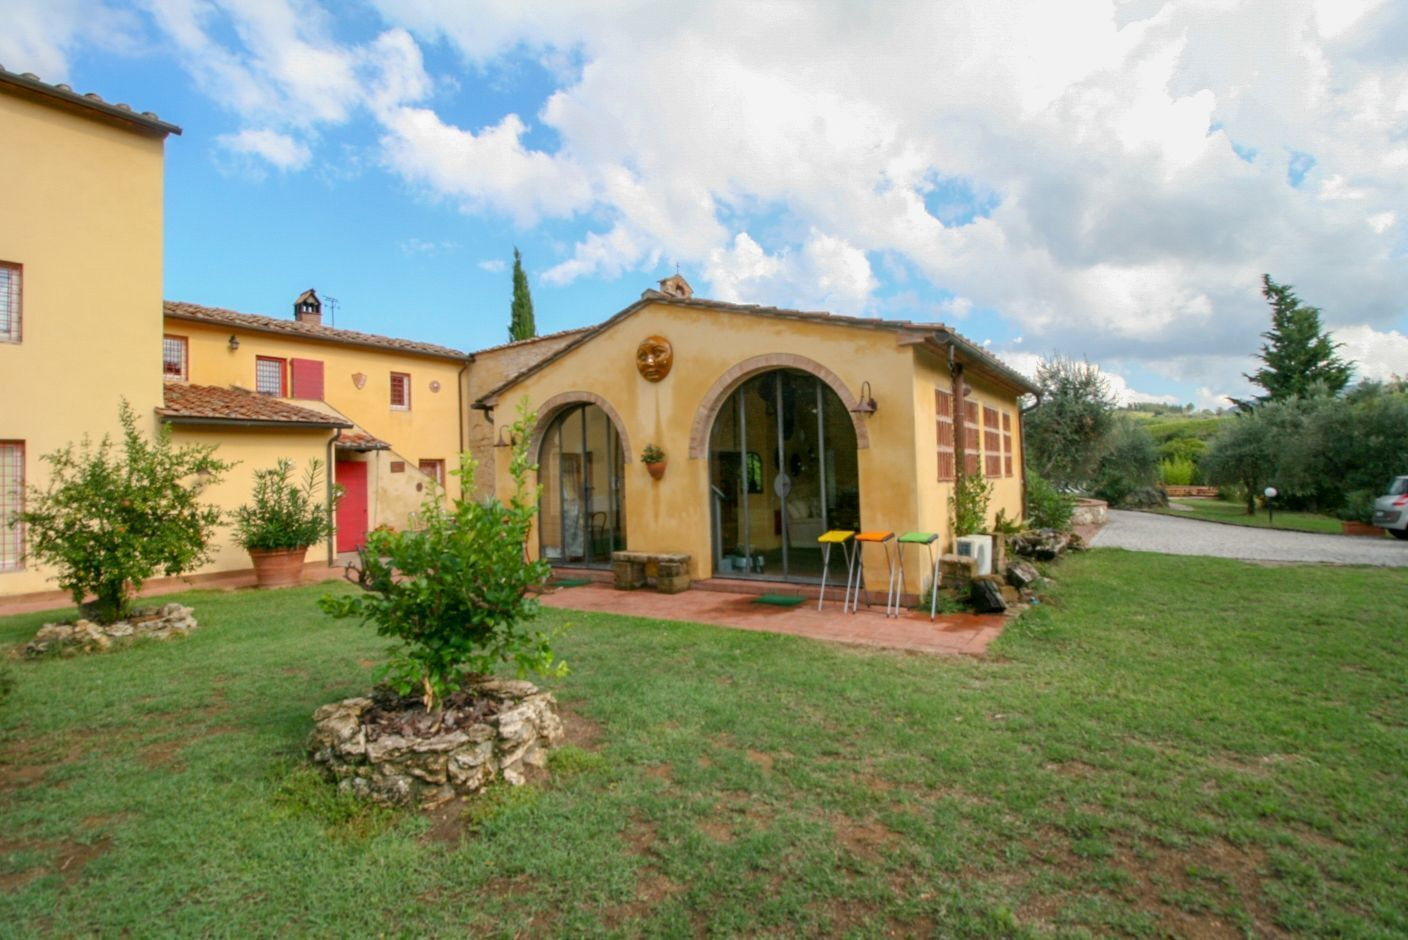 Casciana Terme Lari - Casciana Terme, a Tuscan farmhouse with a large park and swimming pool 01